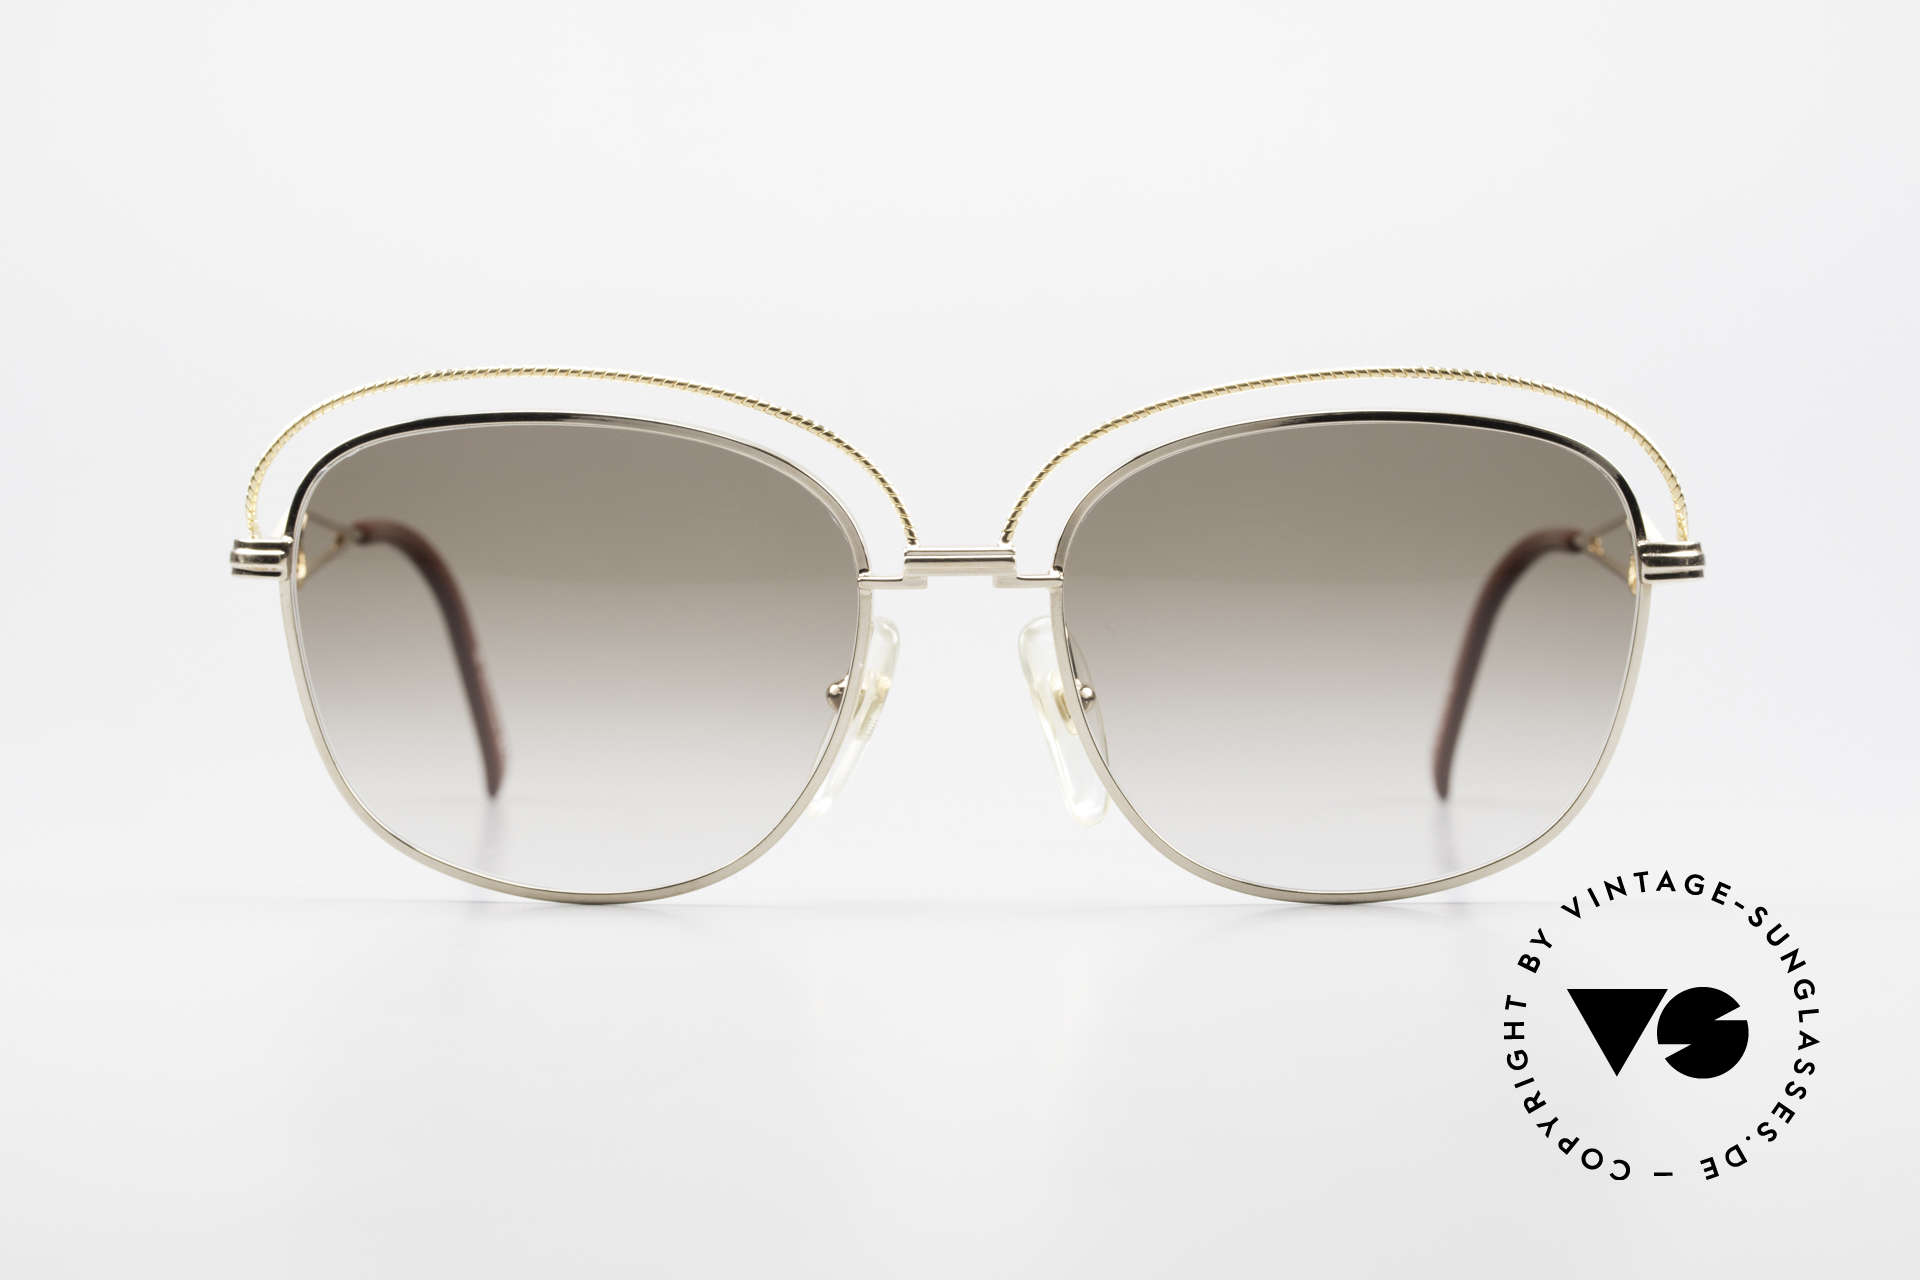 Christian Dior 2461 Ladies 80s Designer Sunglasses, distinctive glamorous design by Christian Dior, Made for Women